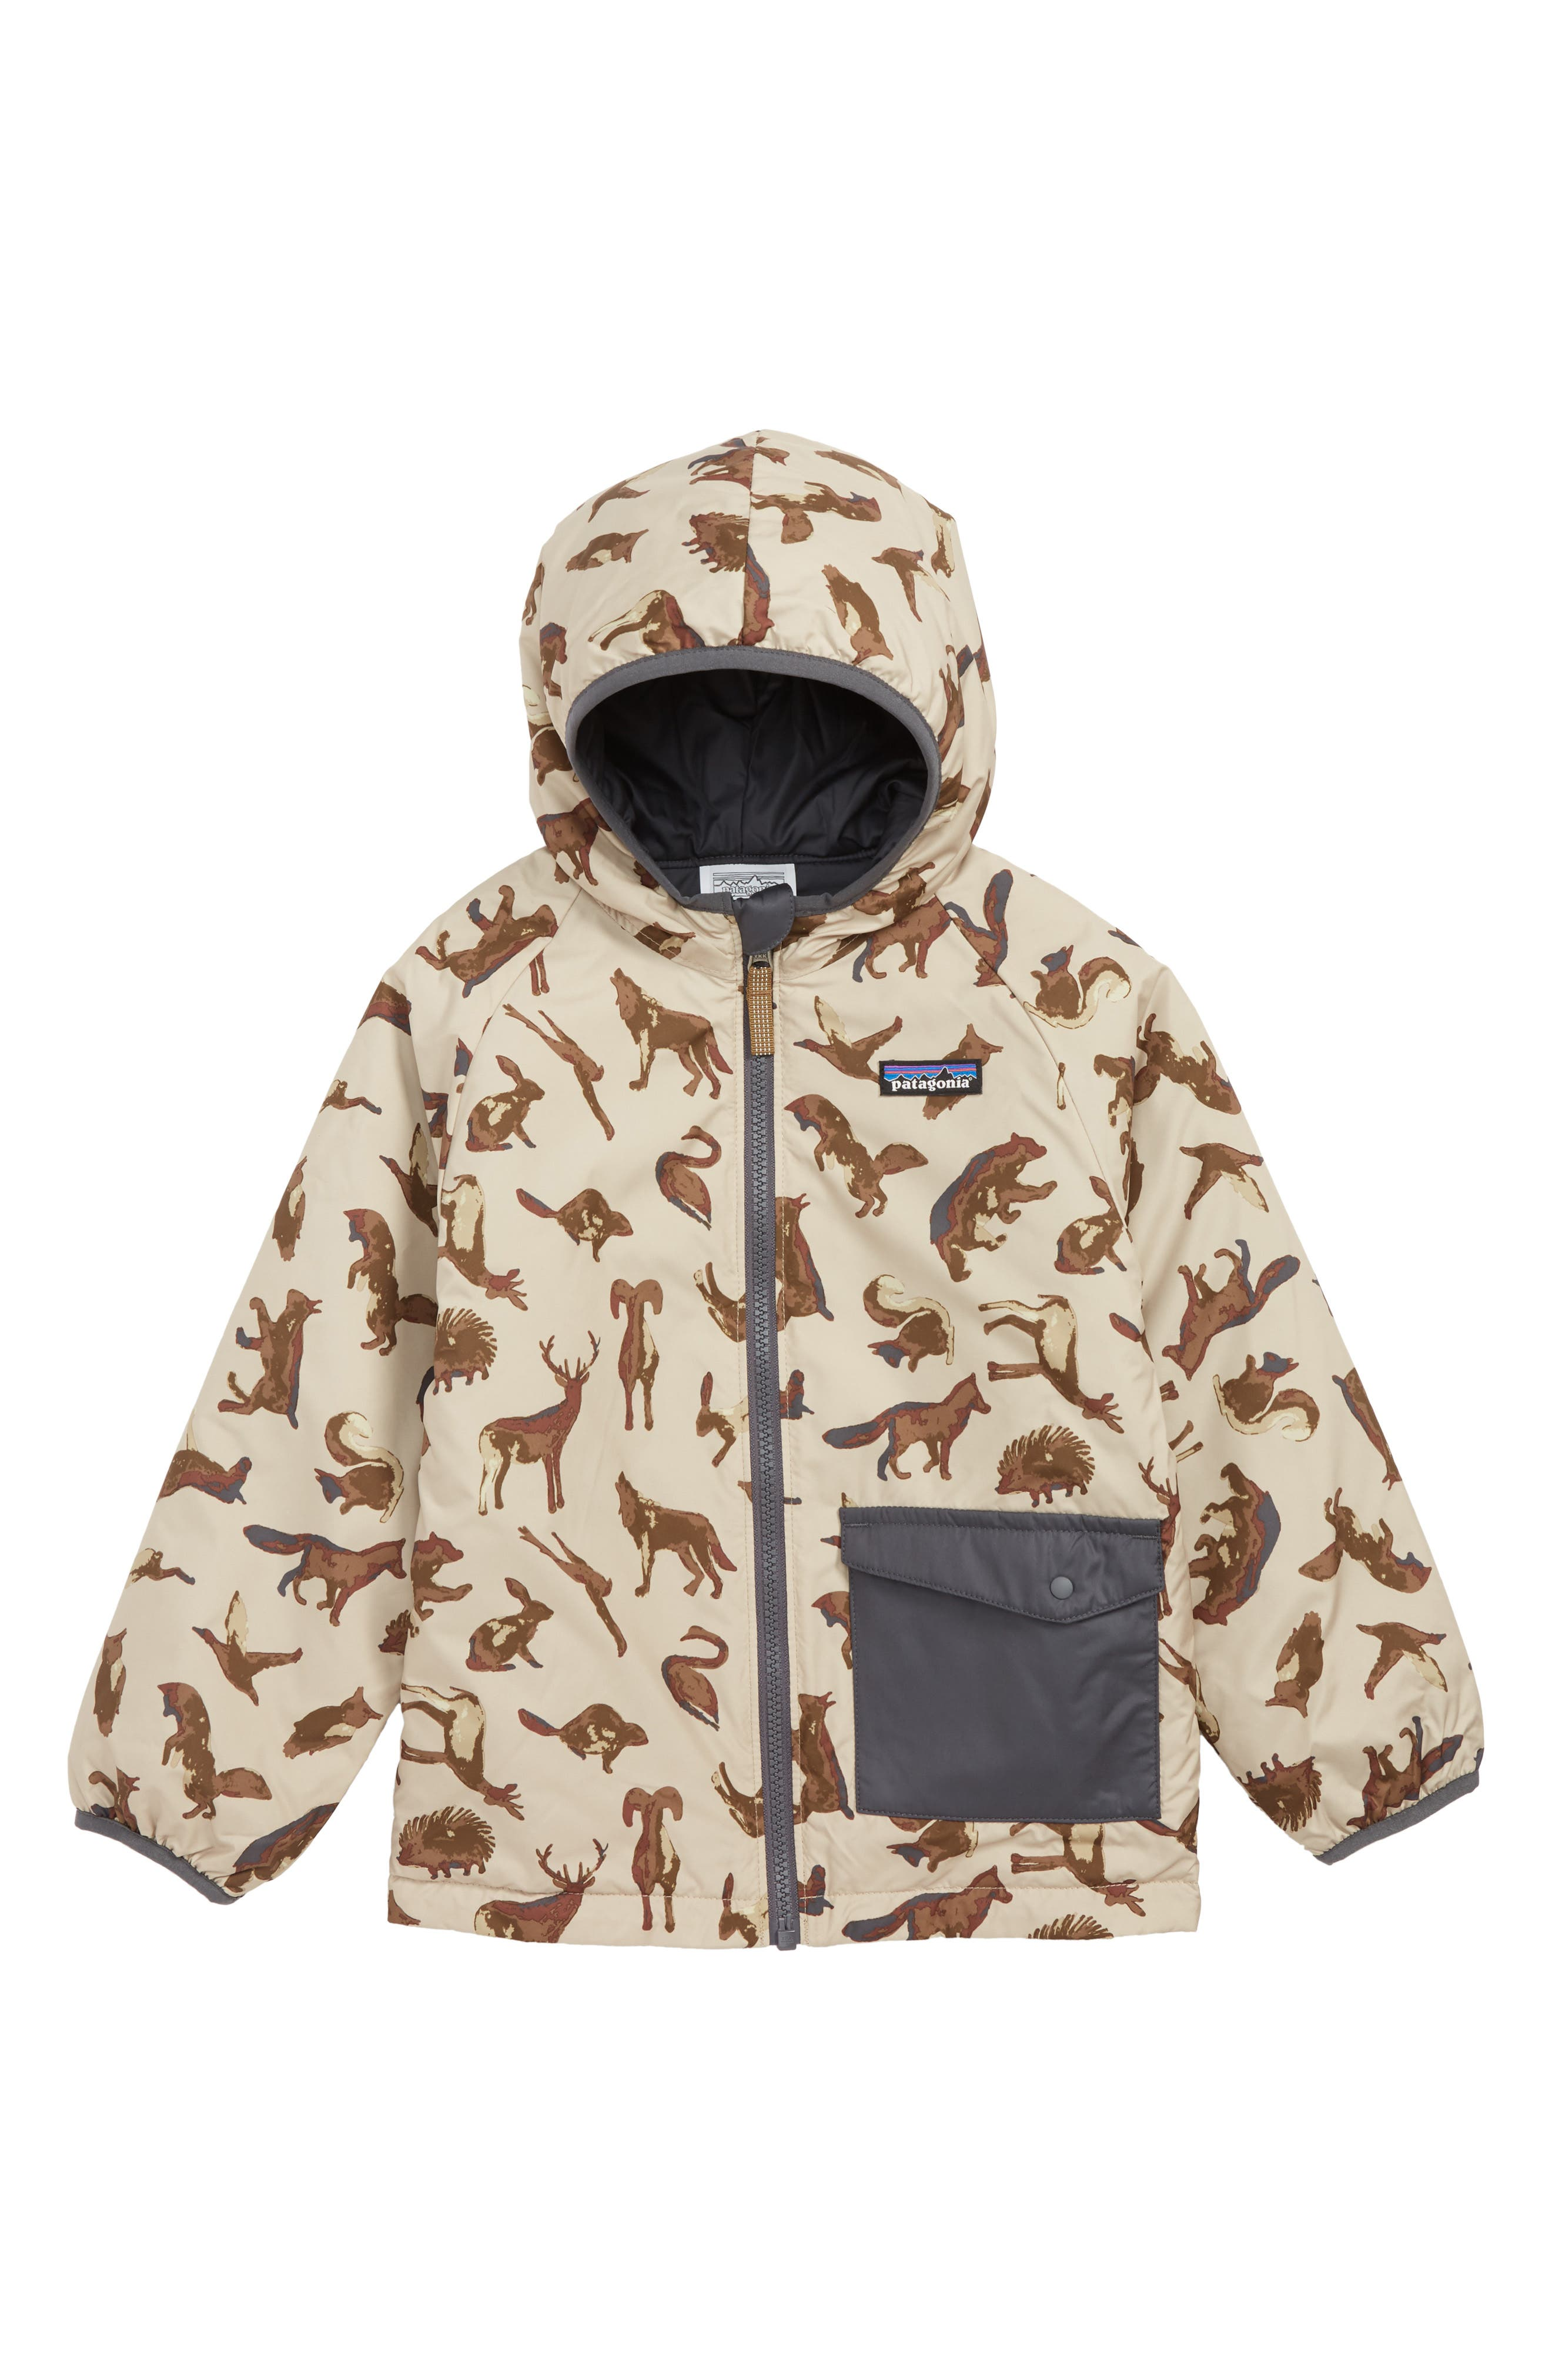 PATAGONIA, Puff Ball Water Resistant Thermolite<sup>®</sup> Insulated Reversible Jacket, Main thumbnail 1, color, 200